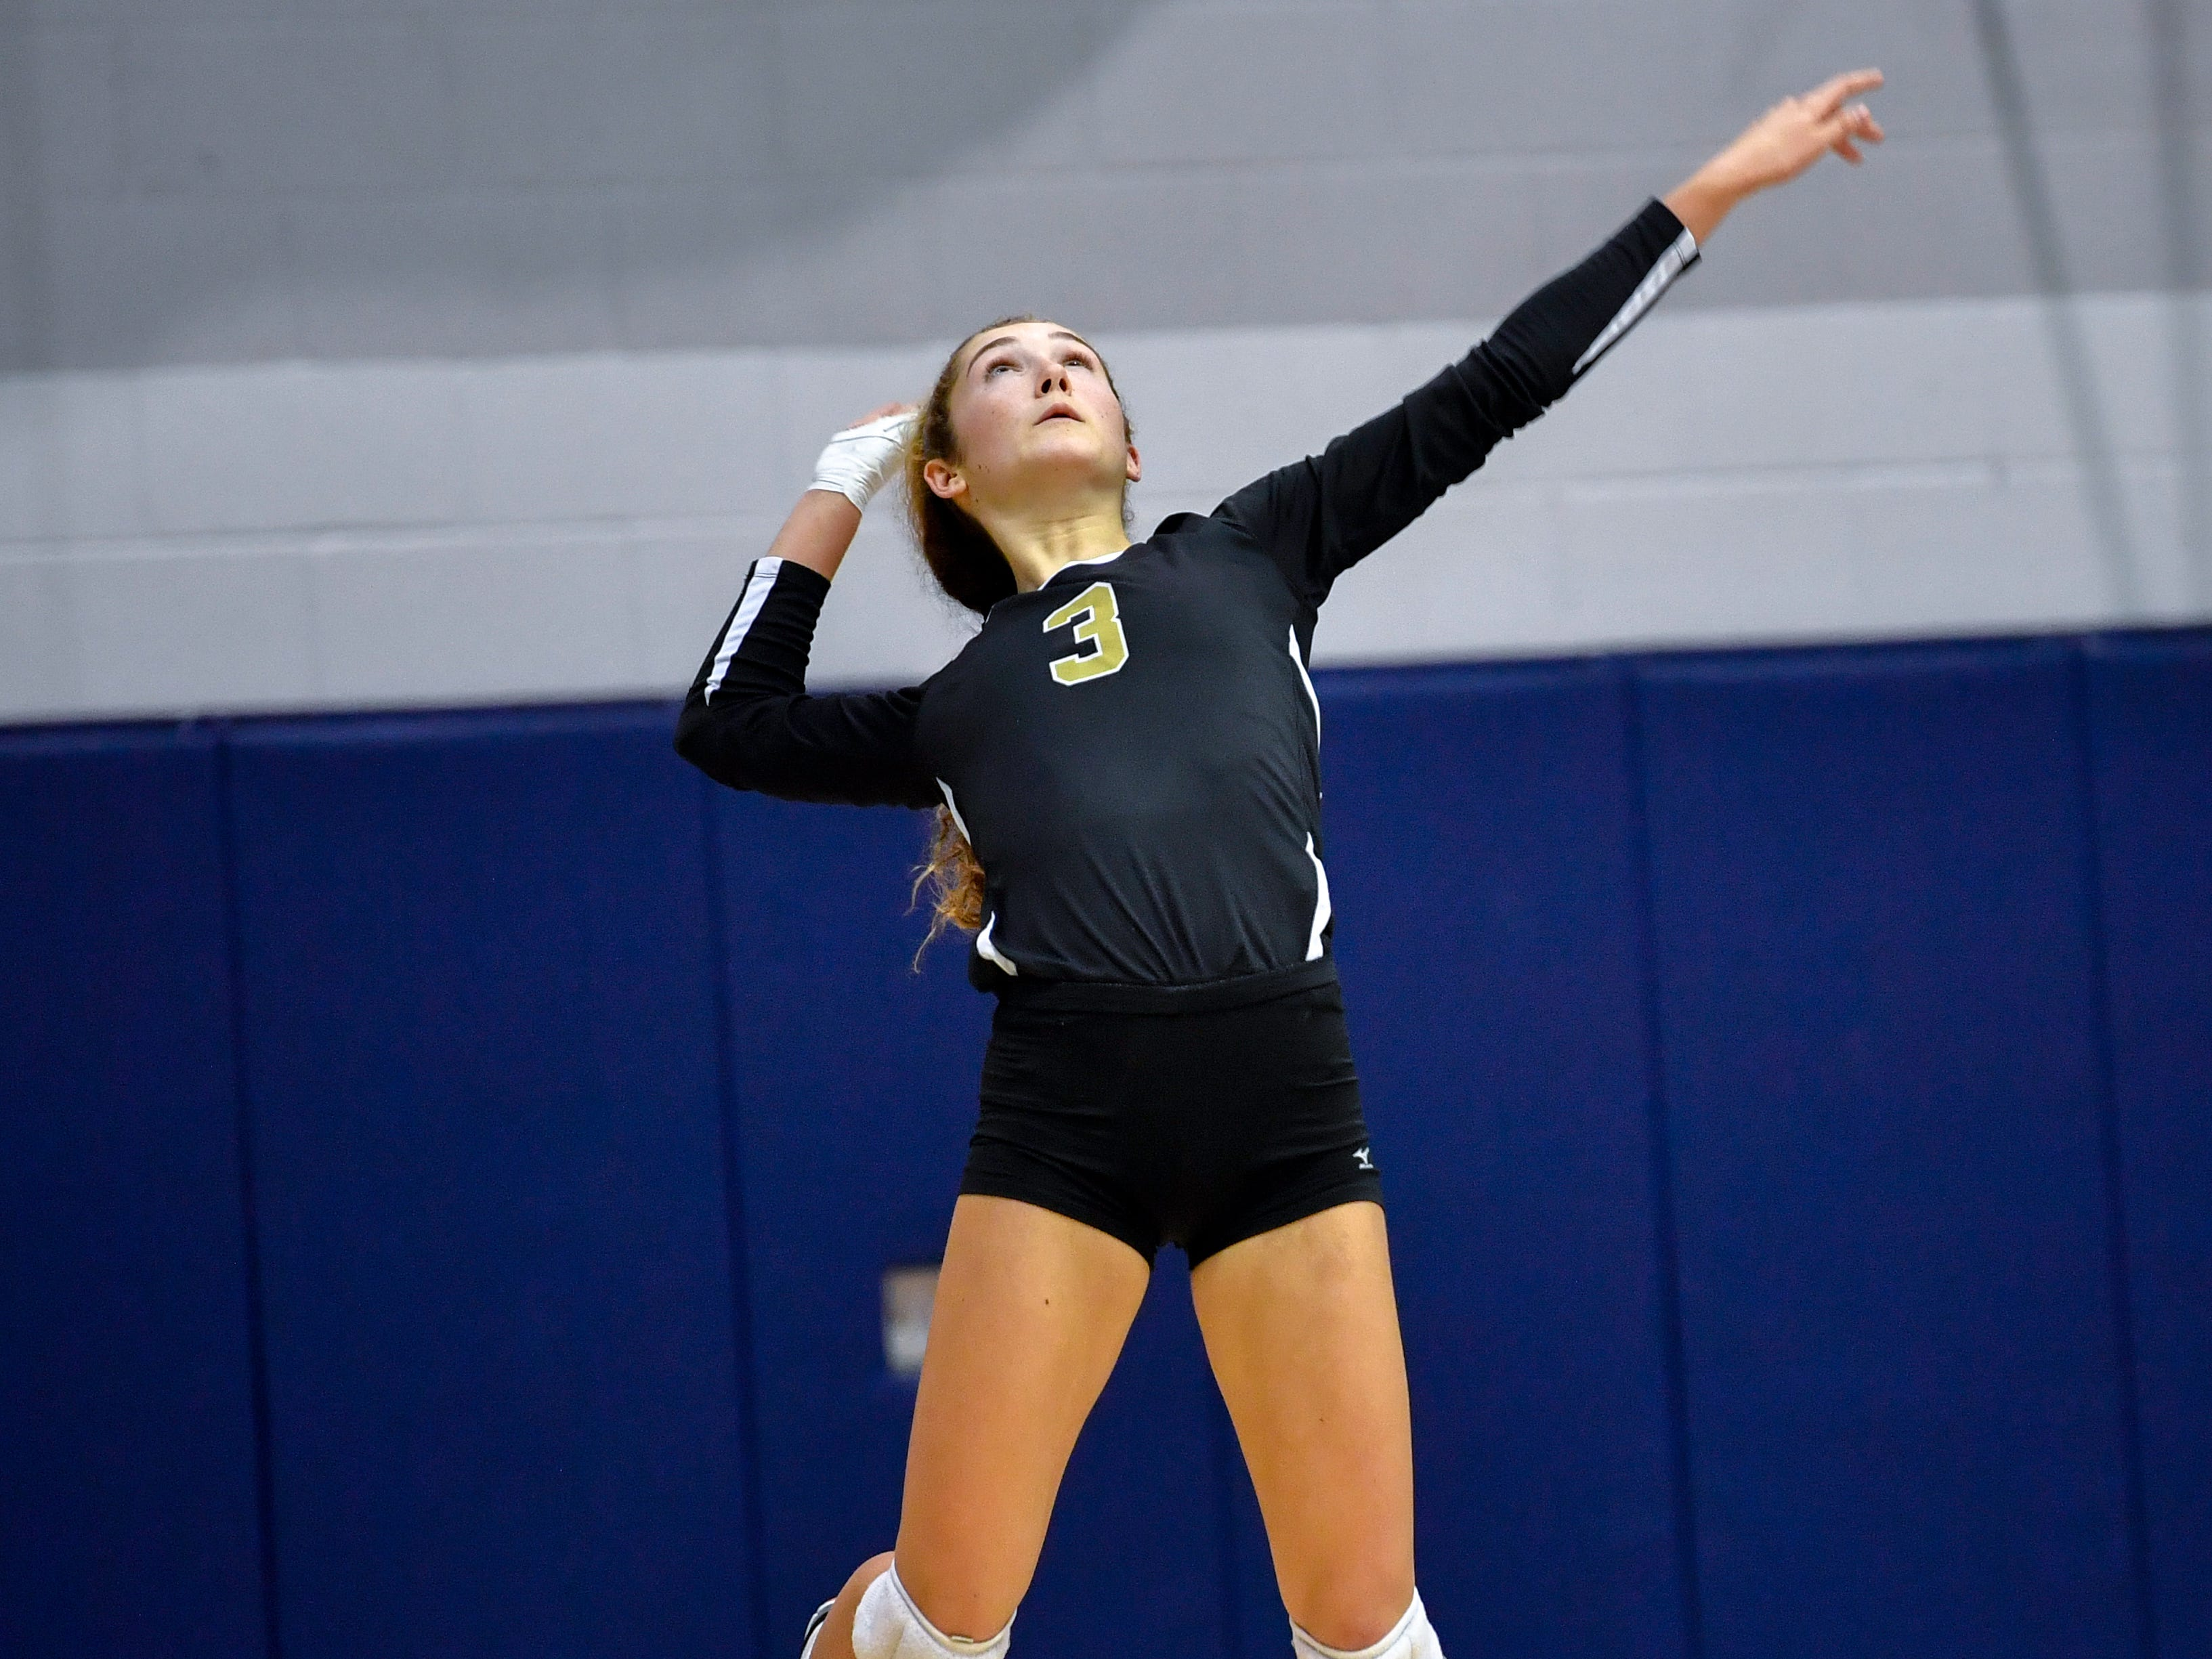 Lauren Trummer (3) of Delone Catholic performs a jump serve during the YAIAA league volleyball tournament semifinals between Eastern York and Delone Catholic, Tuesday, October 23, 2018. The Squirettes defeated the Golden Knights 3-2.